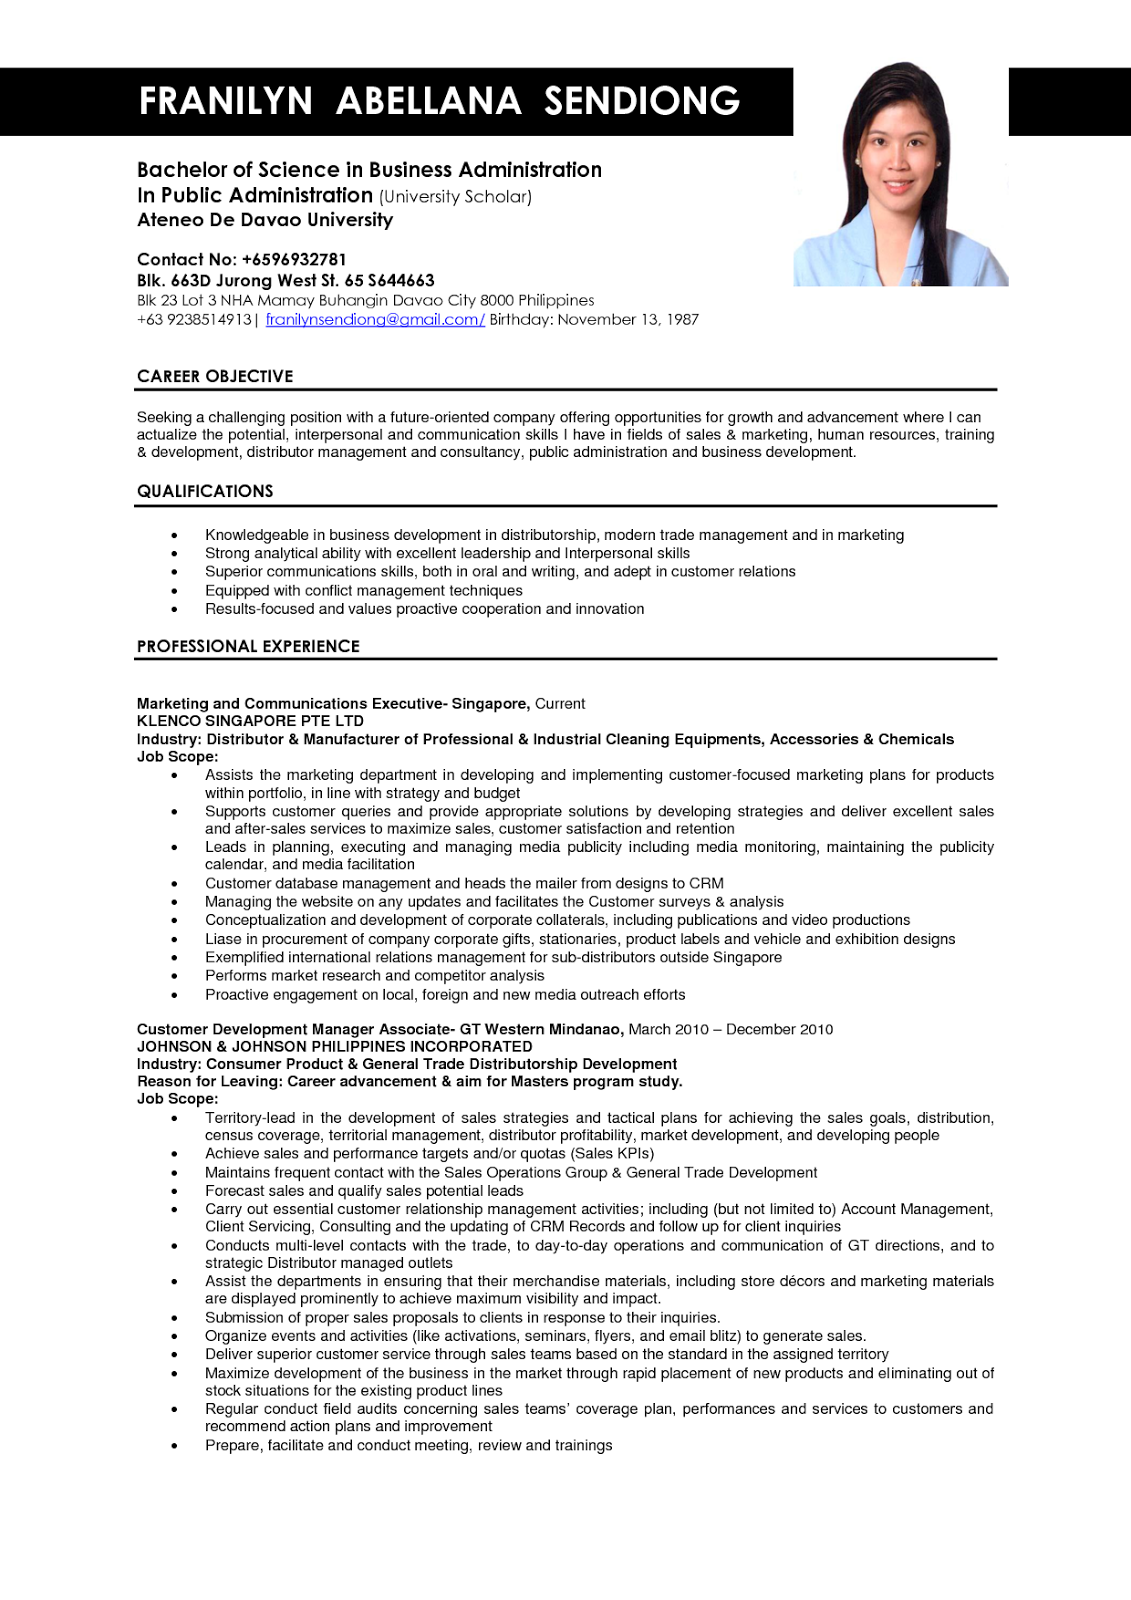 Resume Objective Examples Business Development. top essay writing ...